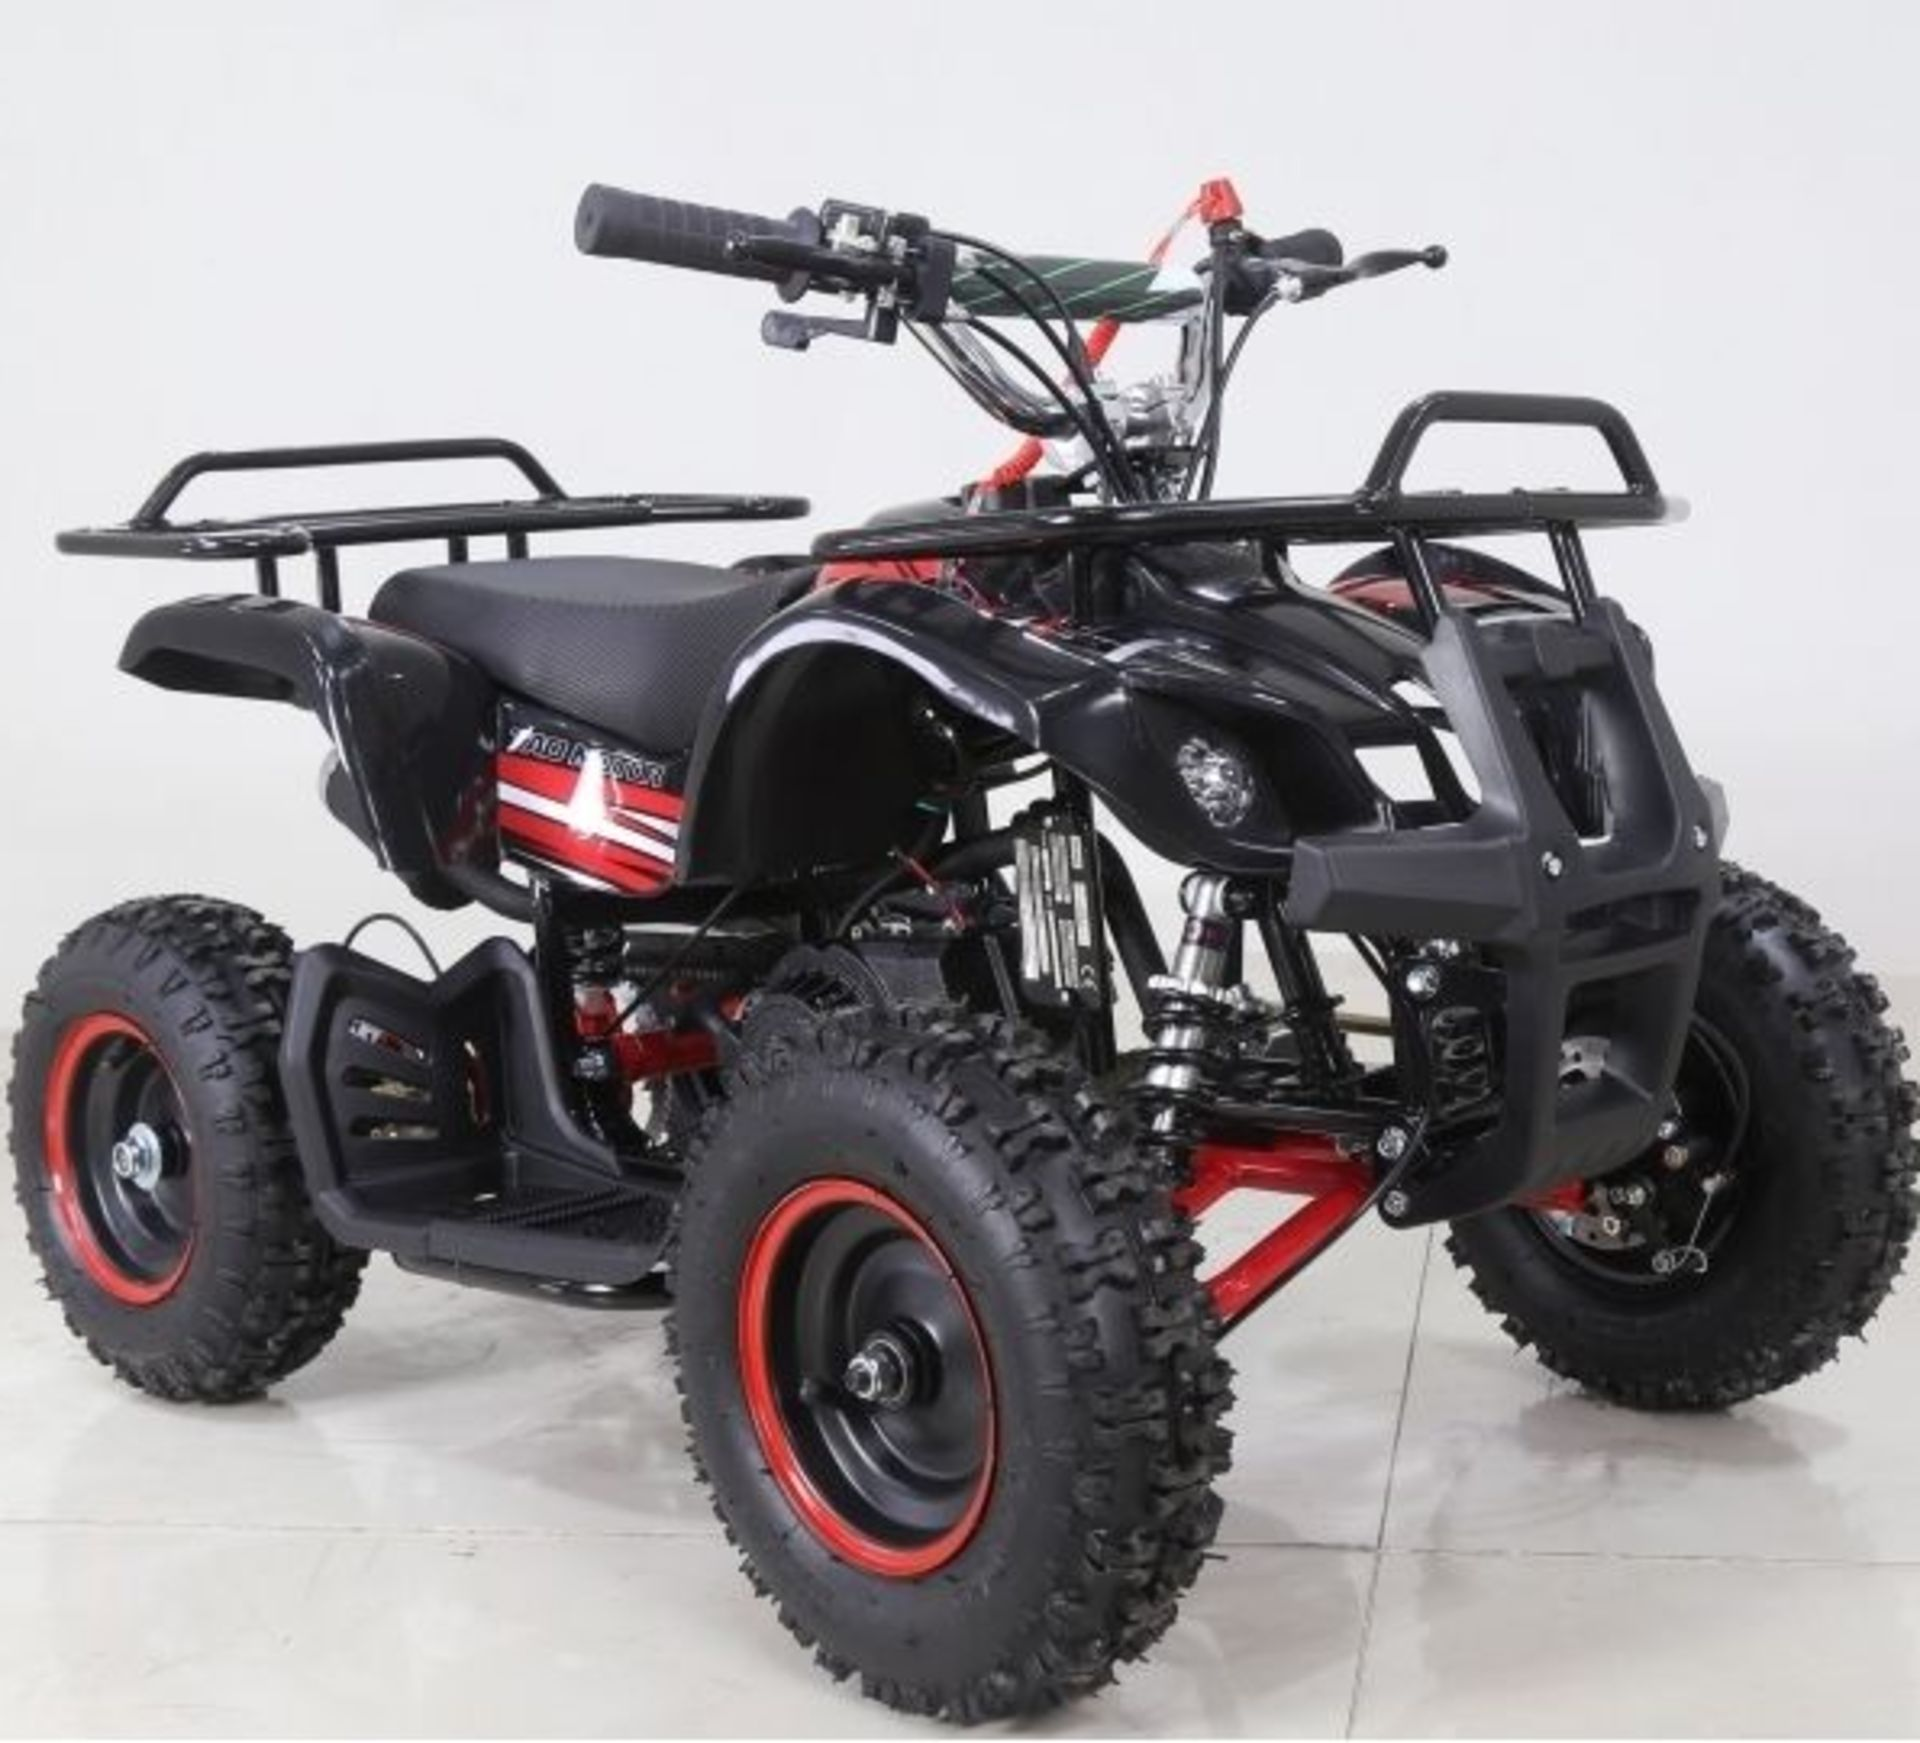 + VAT Brand New 49cc Hawk Mini Quad Bike - Colours May Vary - Full Front And Rear Suspension - Disk - Image 2 of 3